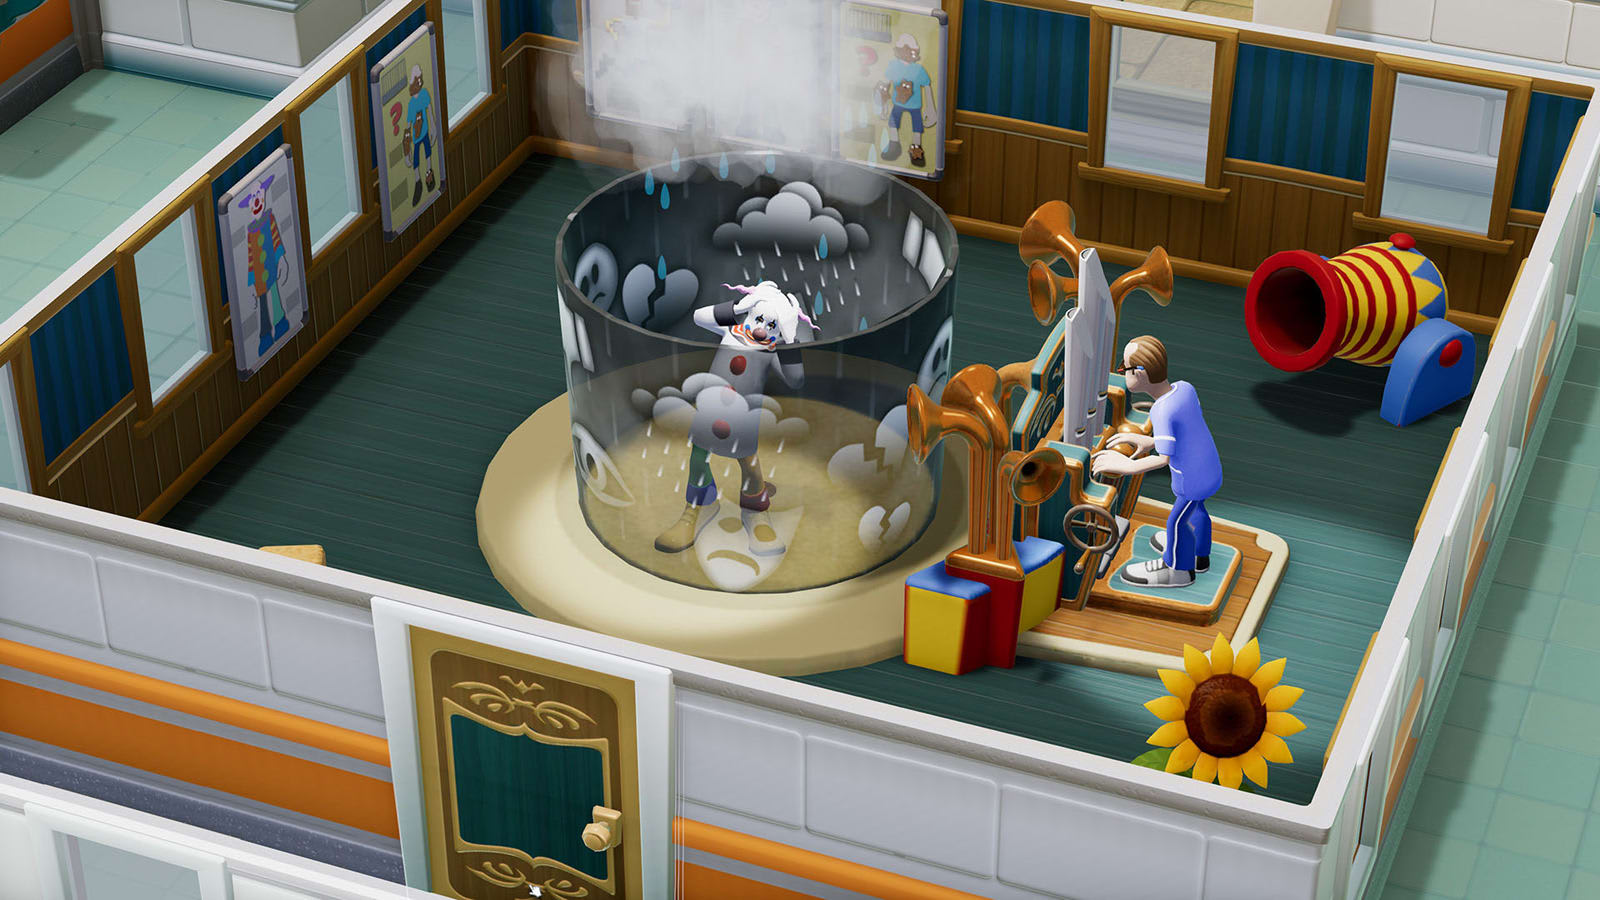 'Two Point Hospital' is coming to consoles in late 2019